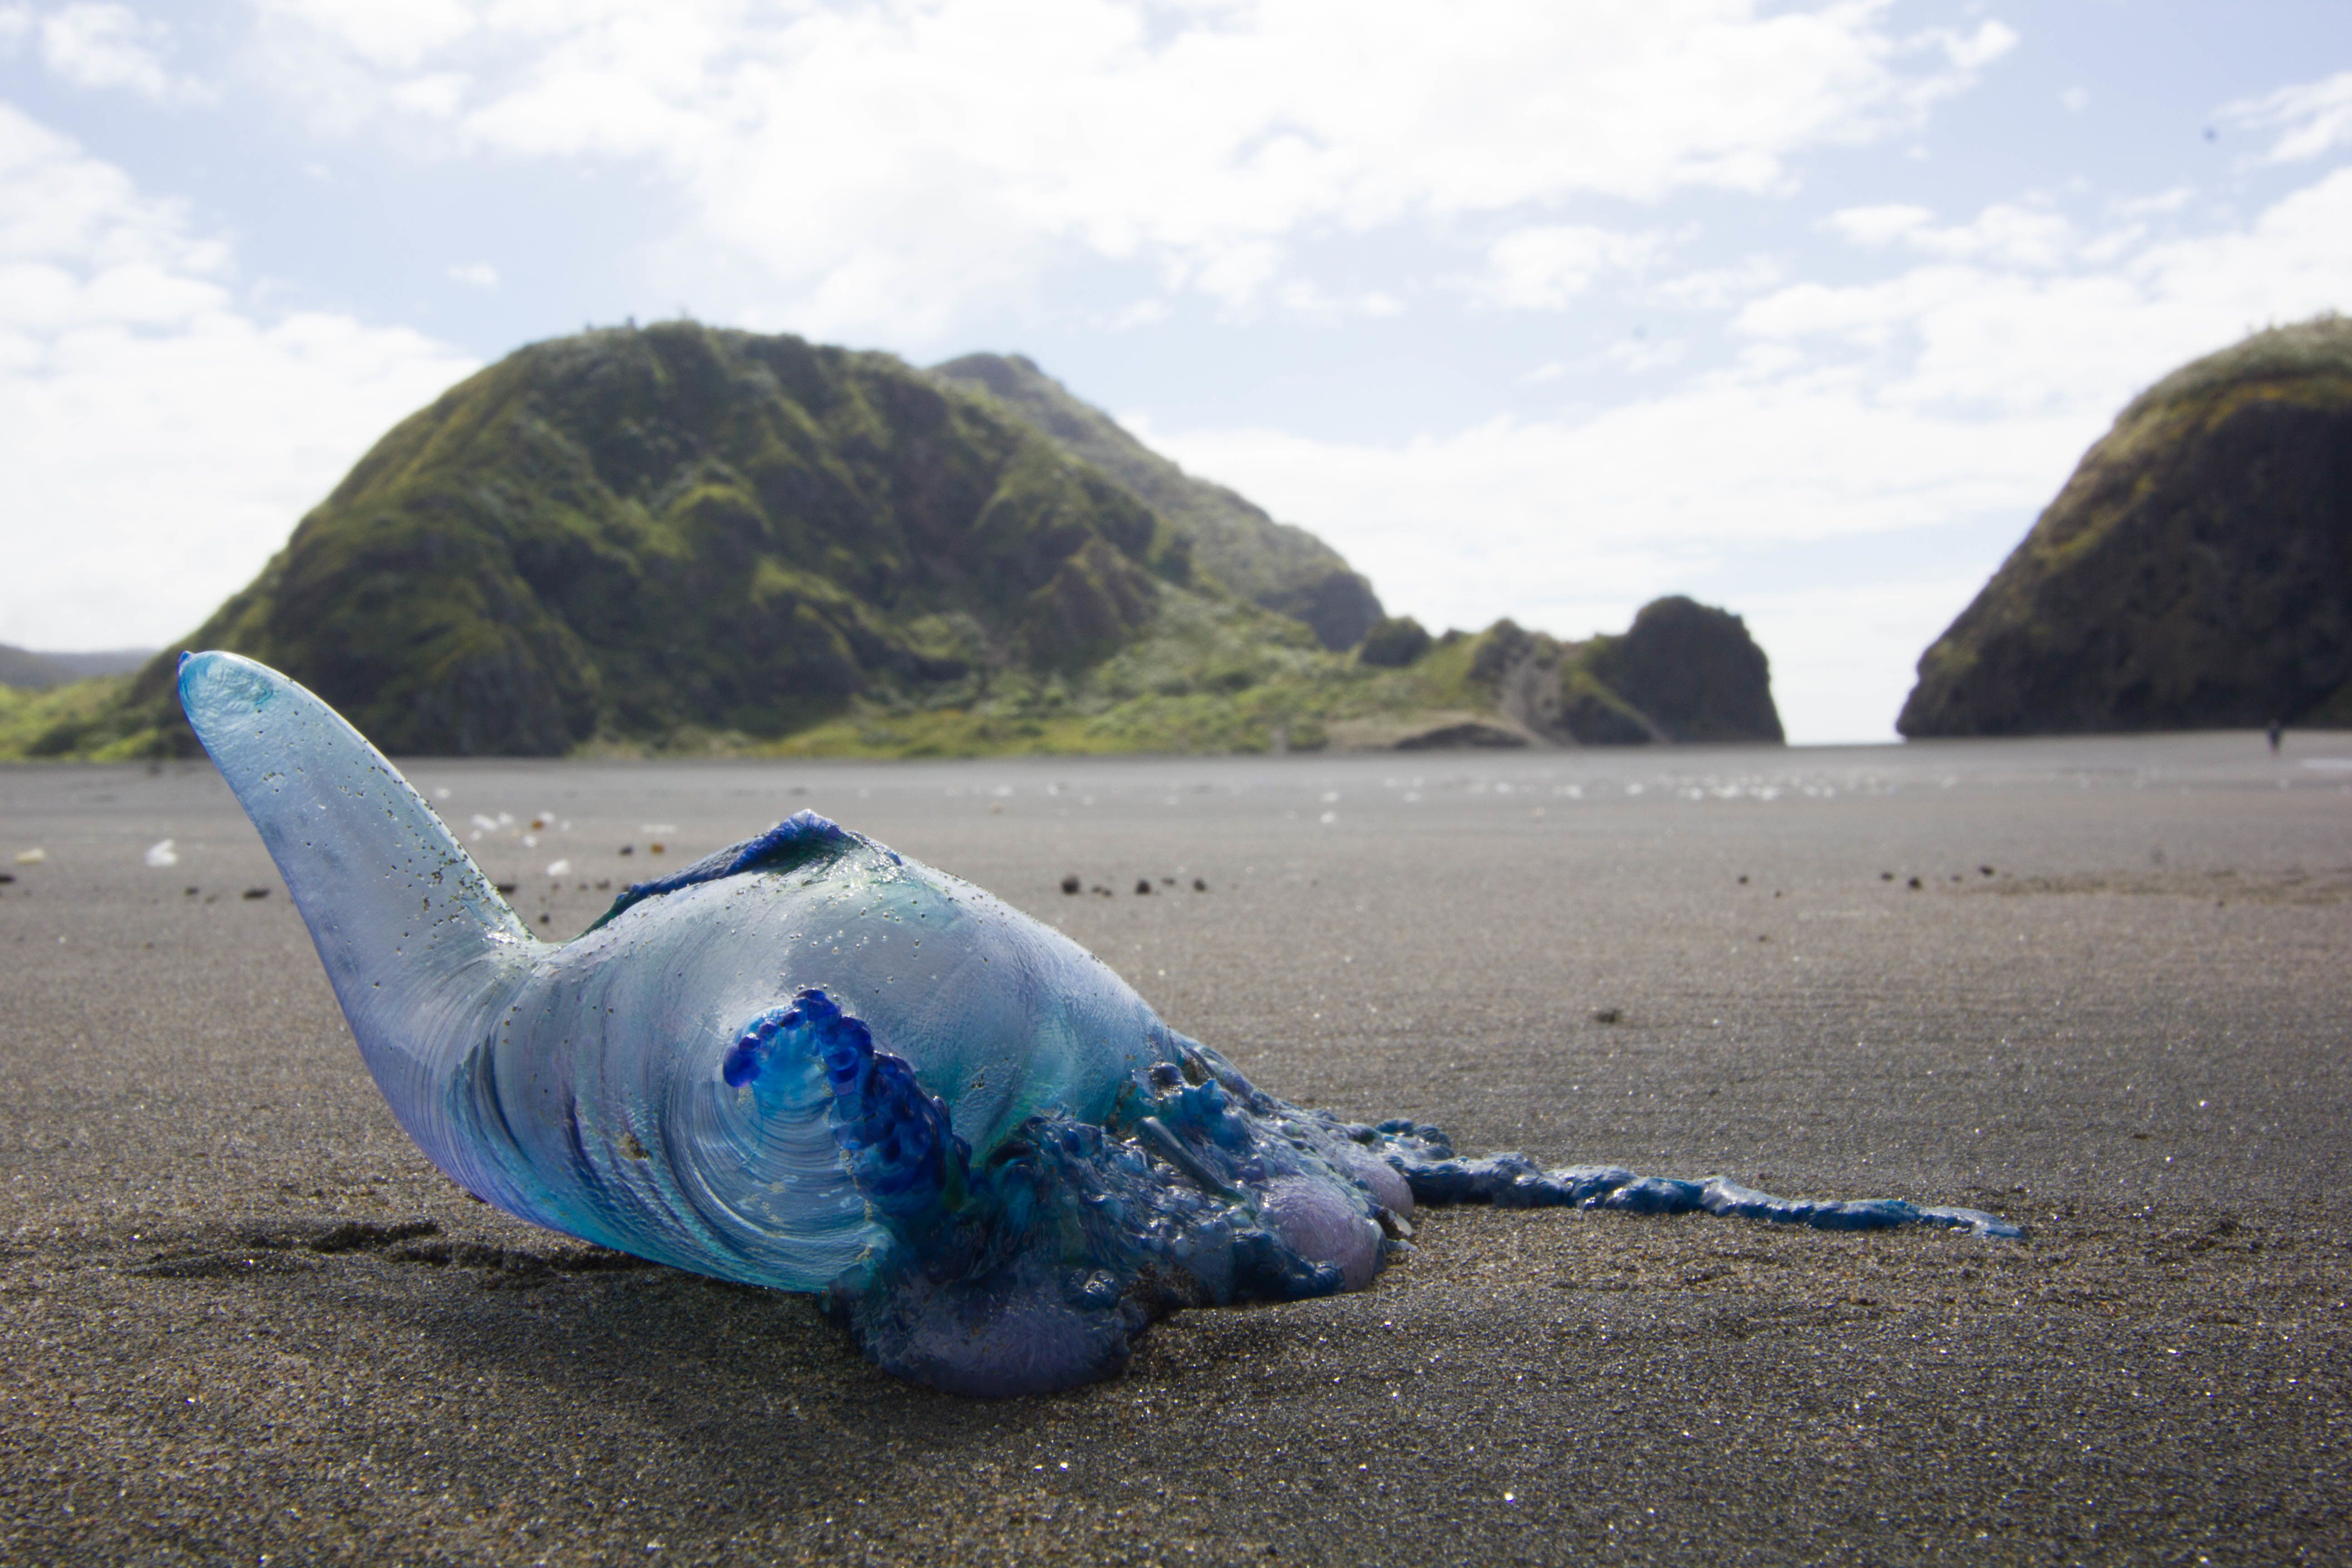 Over 13,000 People Have Been Stung In Just A Week By These Jellyfish In